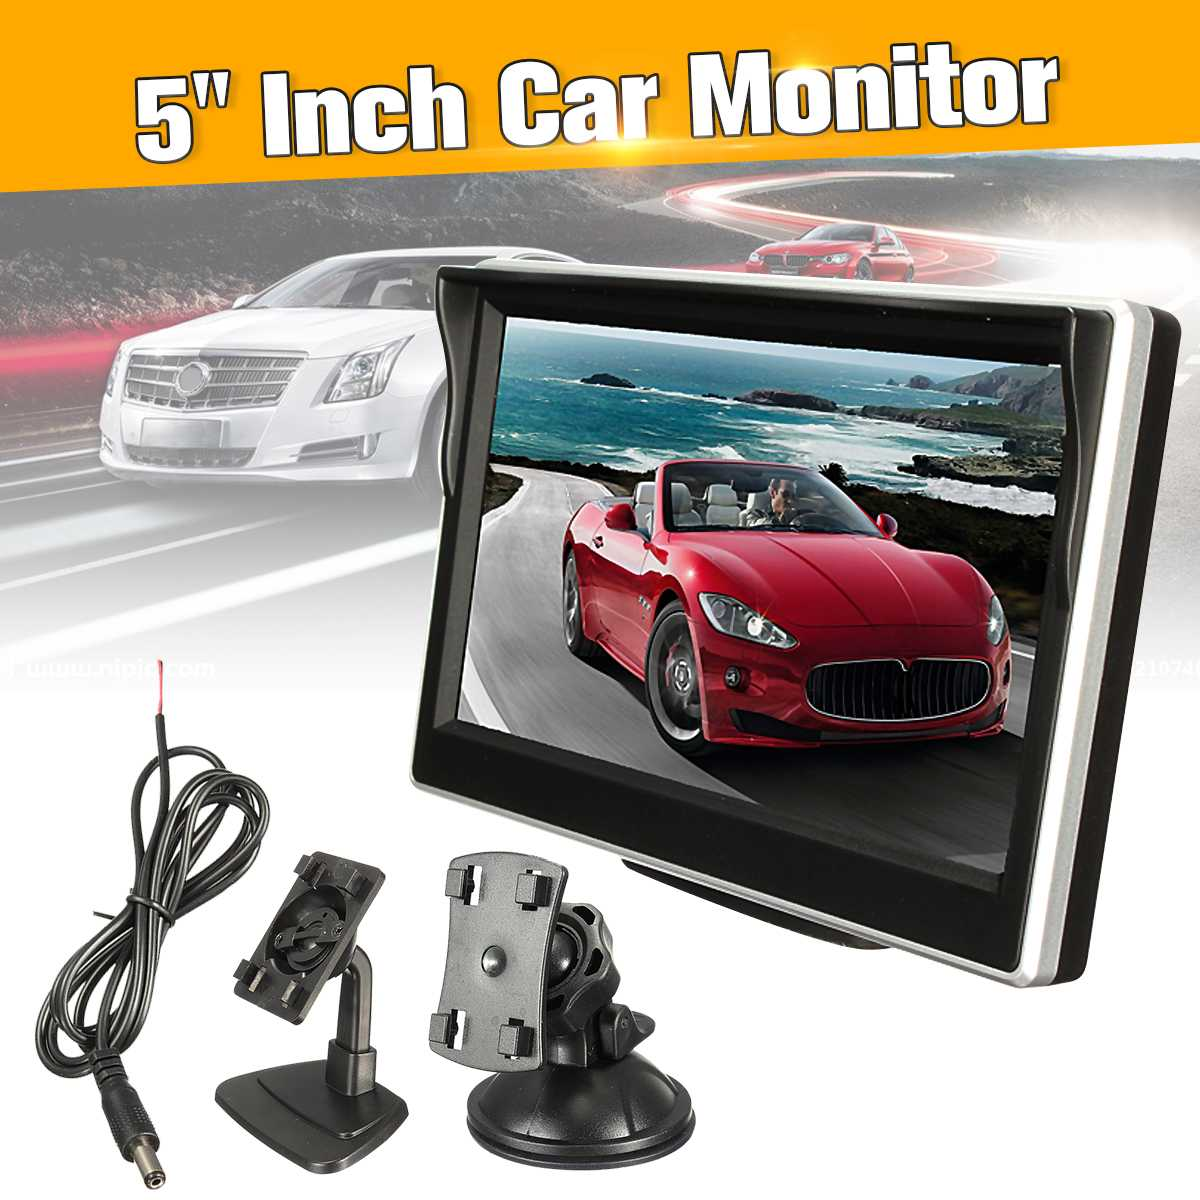 5 inch Color Digital LCD TFT Screen Rear View Monitor For Car Reverse Camera VCR DVD 12V 12.5x8.5x1.8cm PAL/NTSC Compatible5 inch Color Digital LCD TFT Screen Rear View Monitor For Car Reverse Camera VCR DVD 12V 12.5x8.5x1.8cm PAL/NTSC Compatible